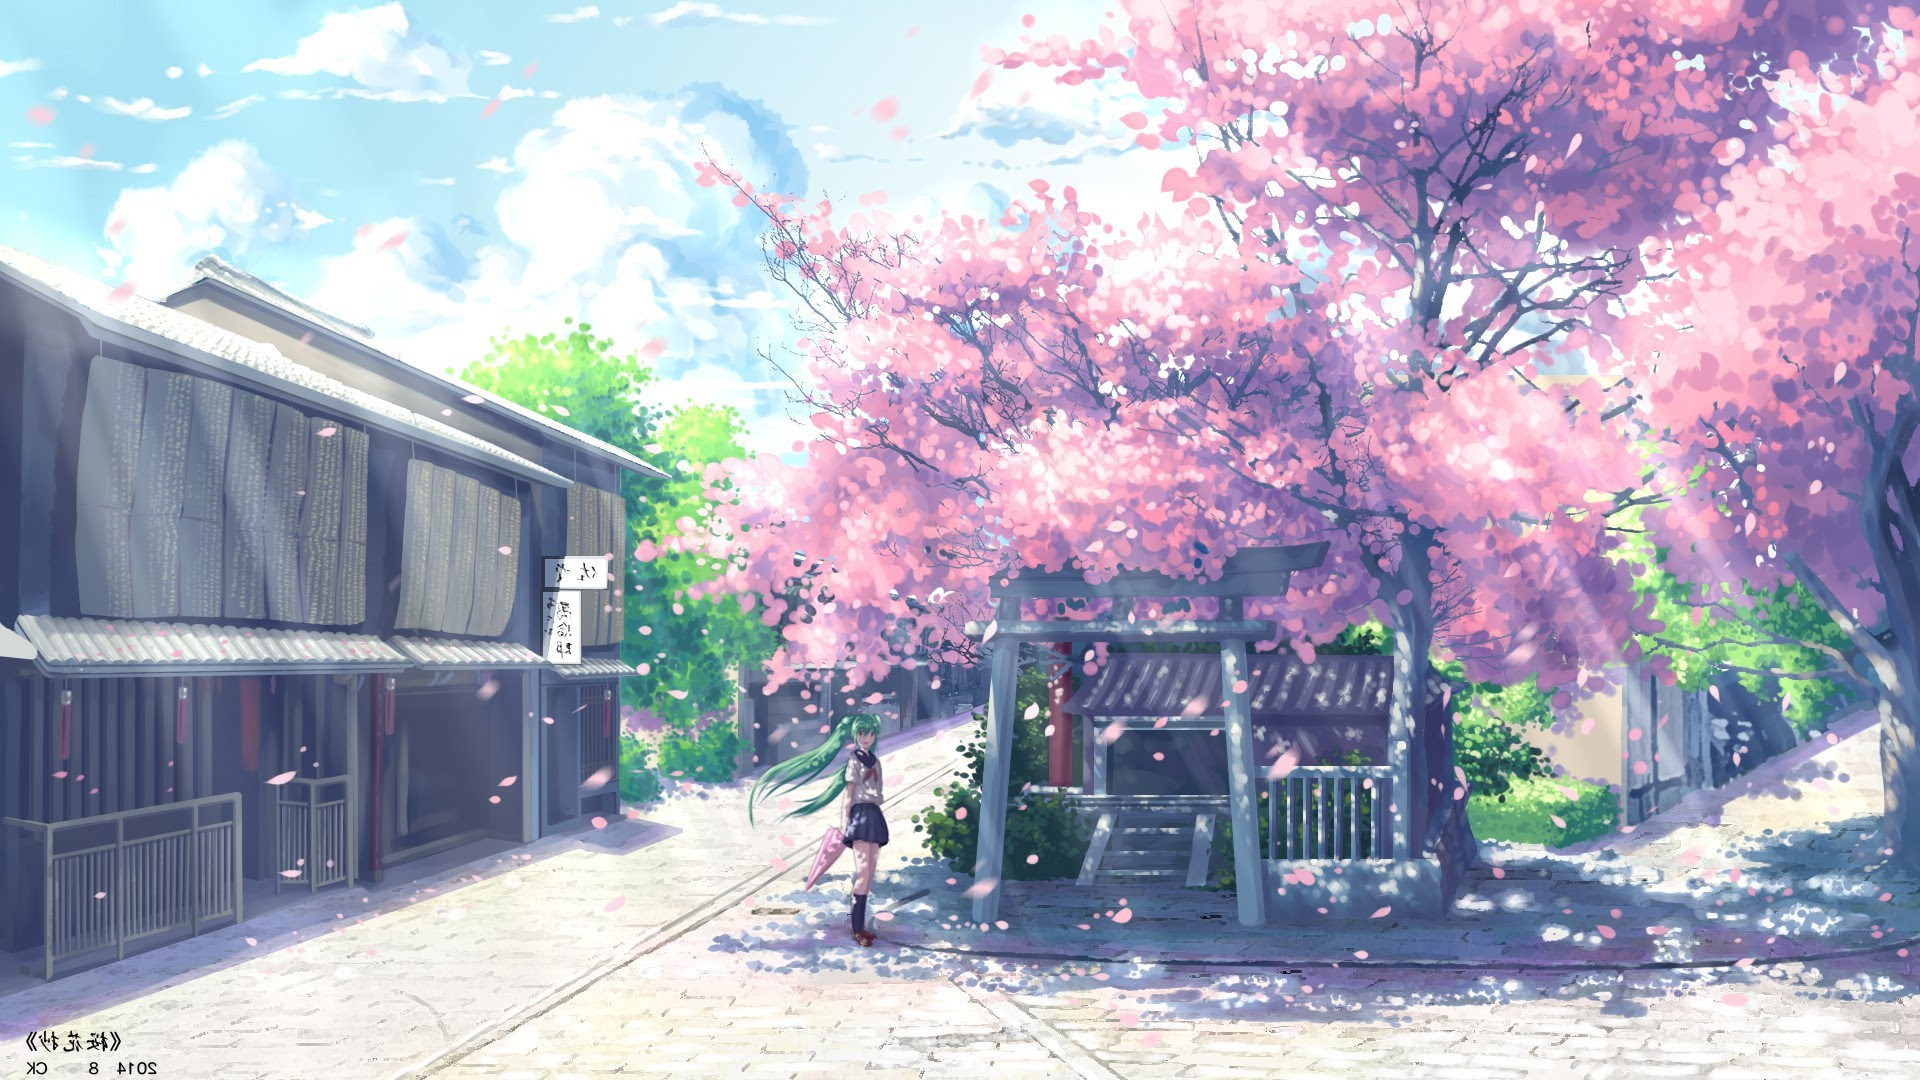 17 Anime Japanese Aesthetic Wallpaper Desktop Sachi Wallpaper